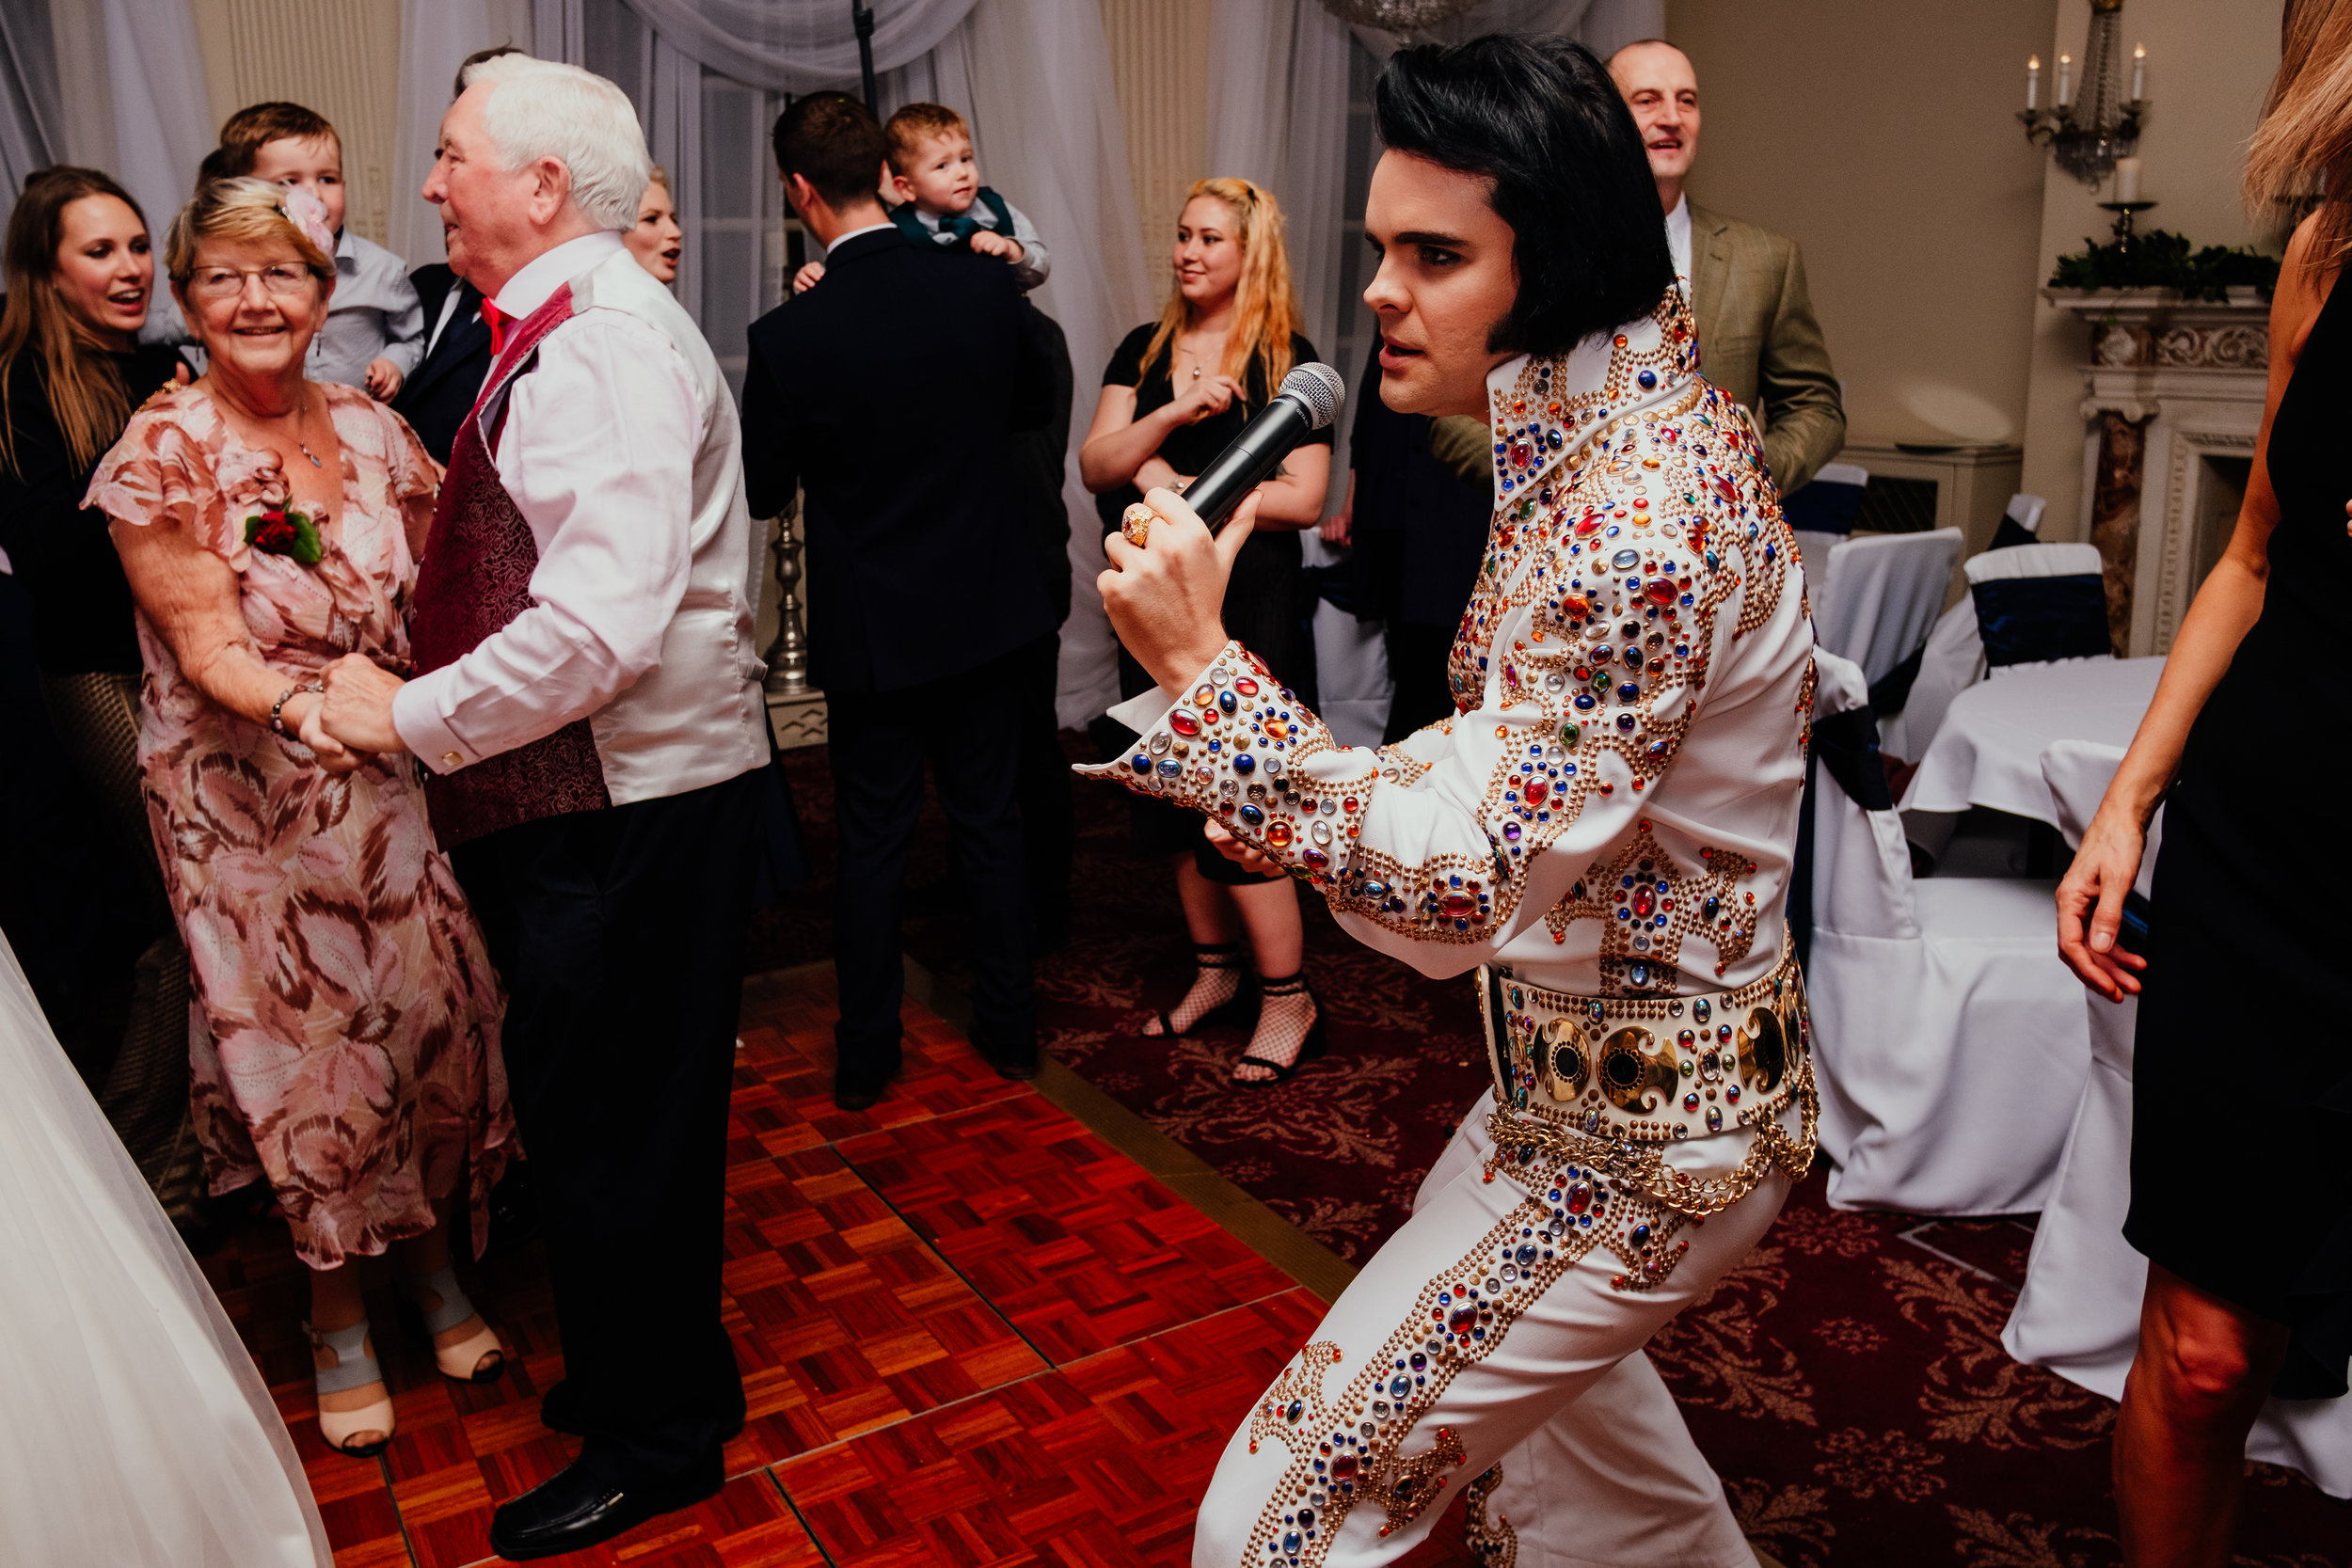 Buxted House Hotel wedding Elvis singing for wedding guests